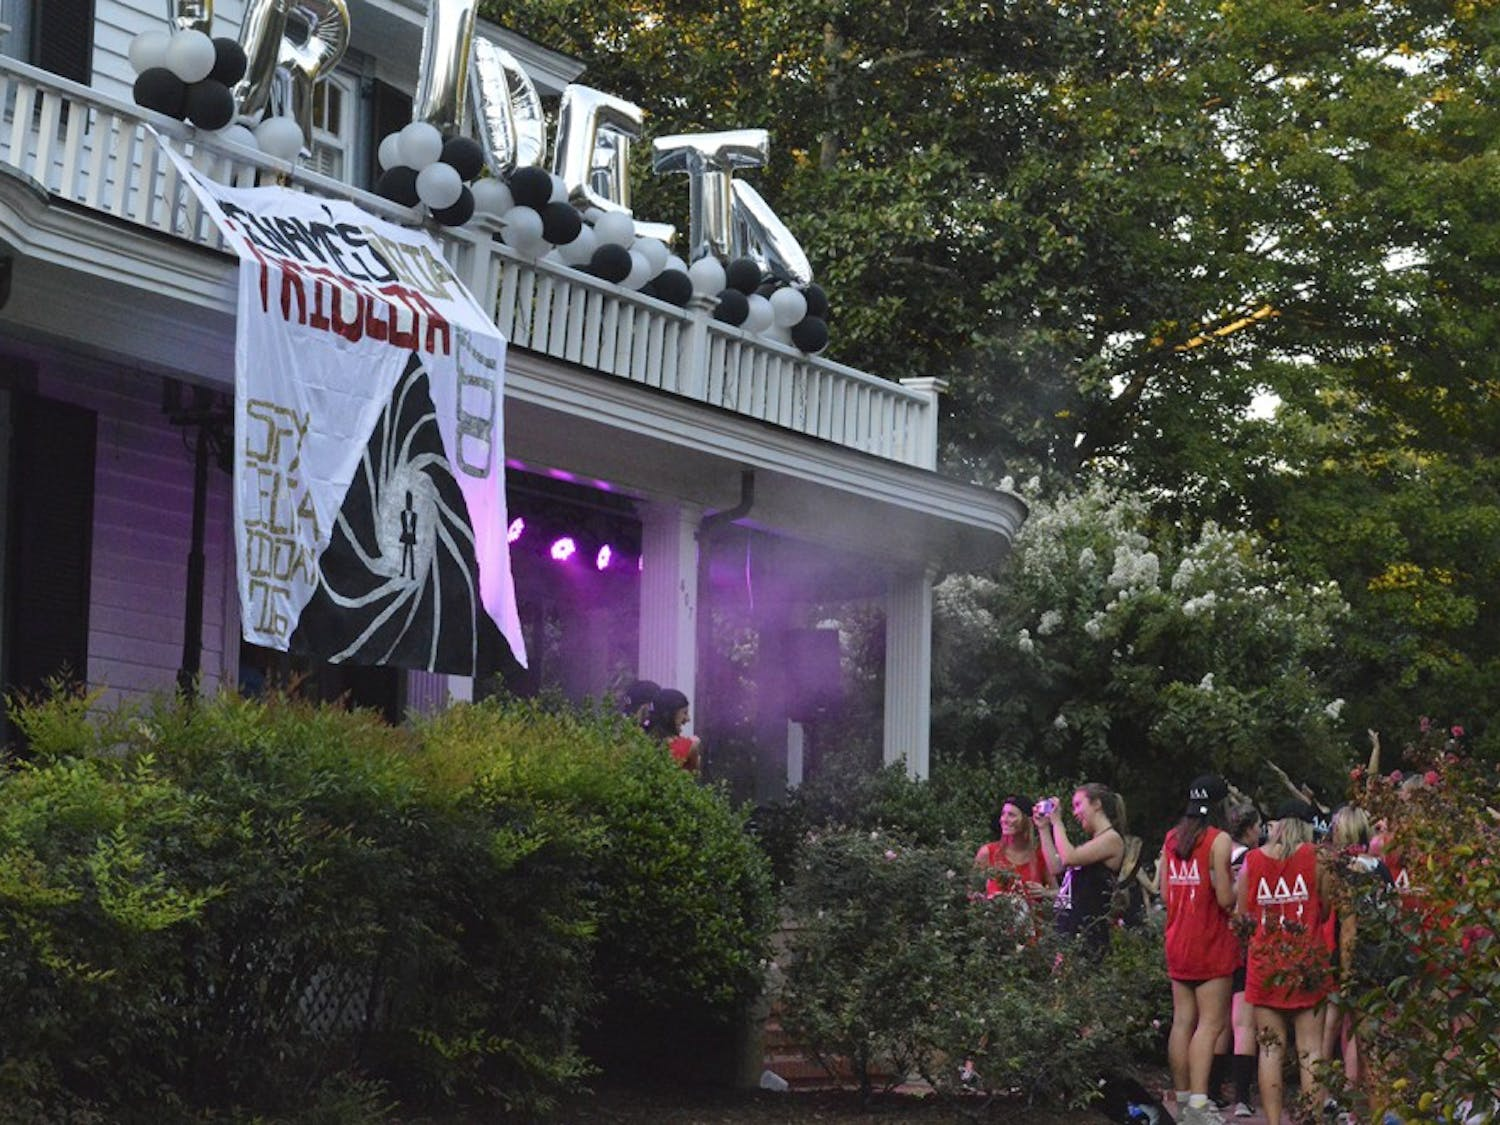 The Tri Delta house emitted pink smoke to set the atmosphere for the sorority's Bid Day celebration.